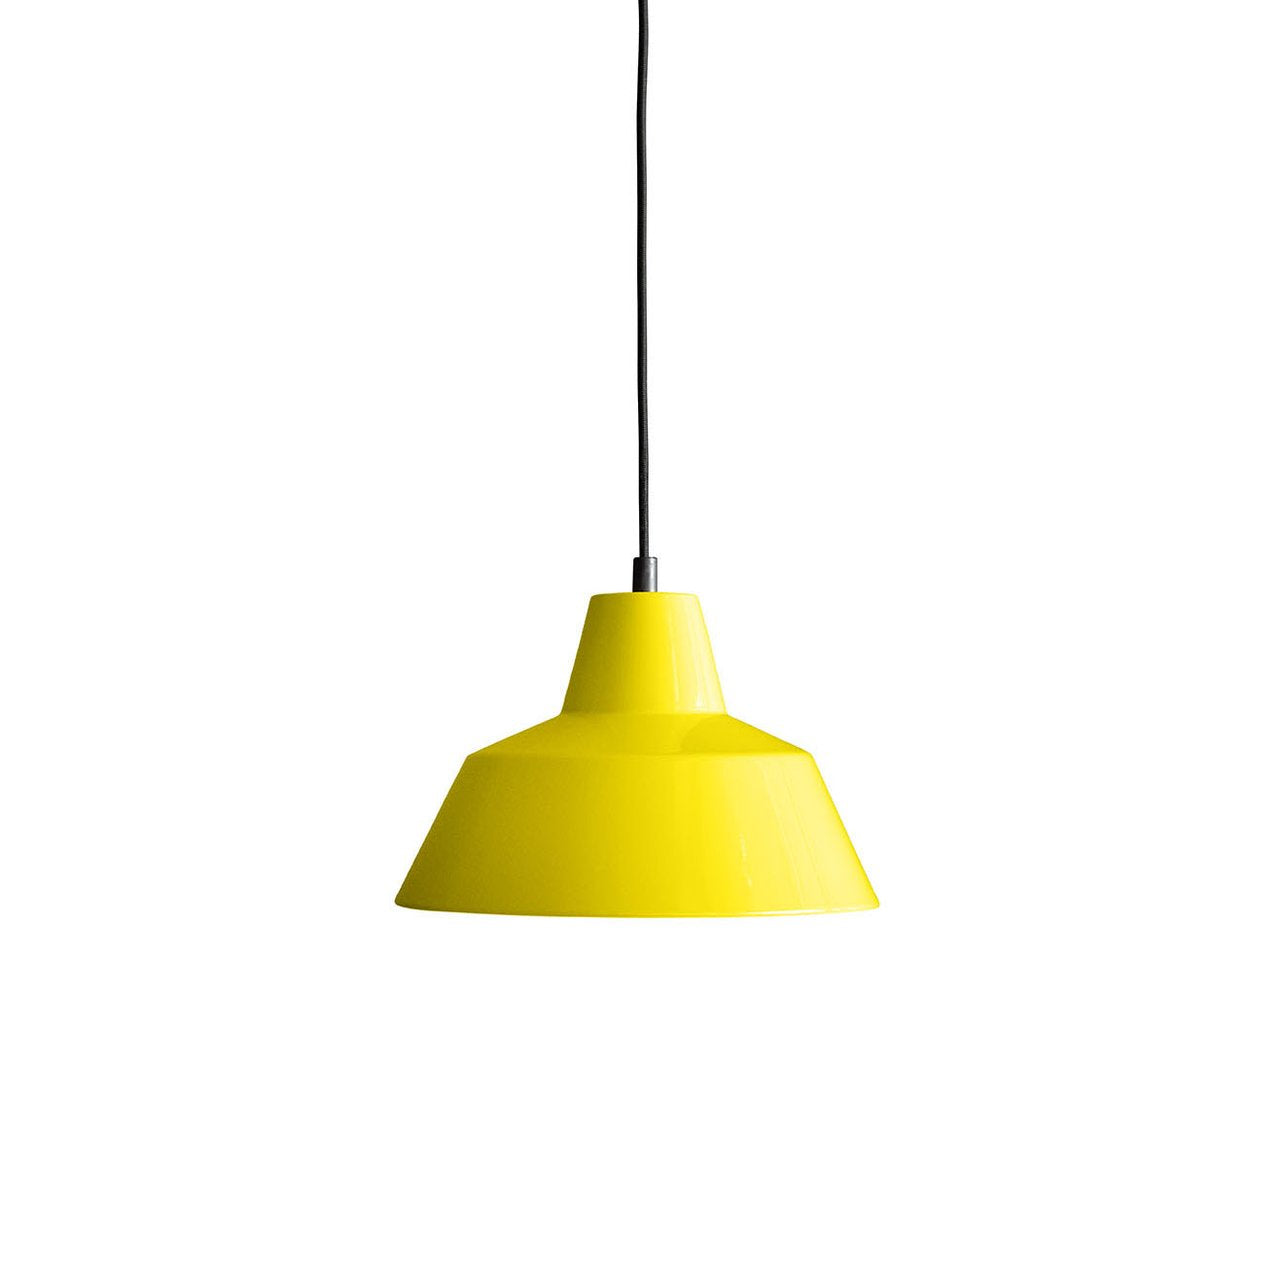 Workshop Lamp W2